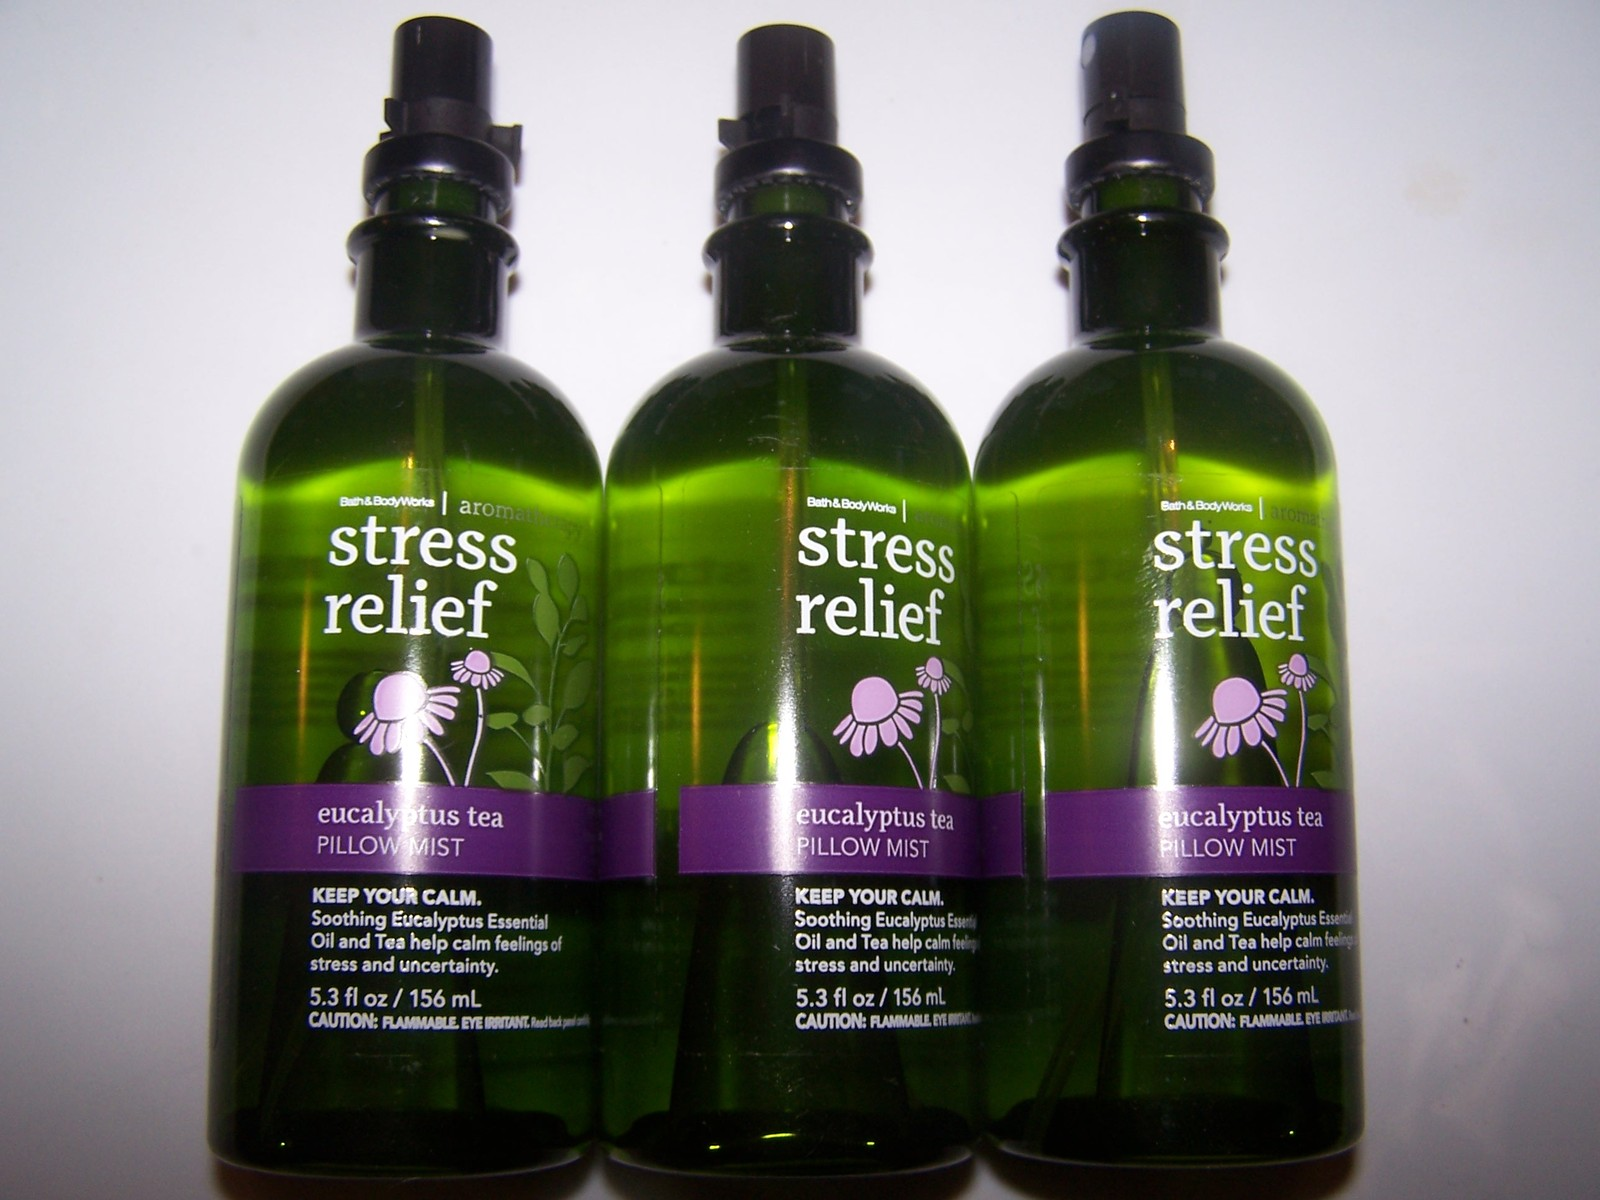 3 Bath & Body Works Aromatherapy Stress Relief Eucalyptus Tea Pillow Mist